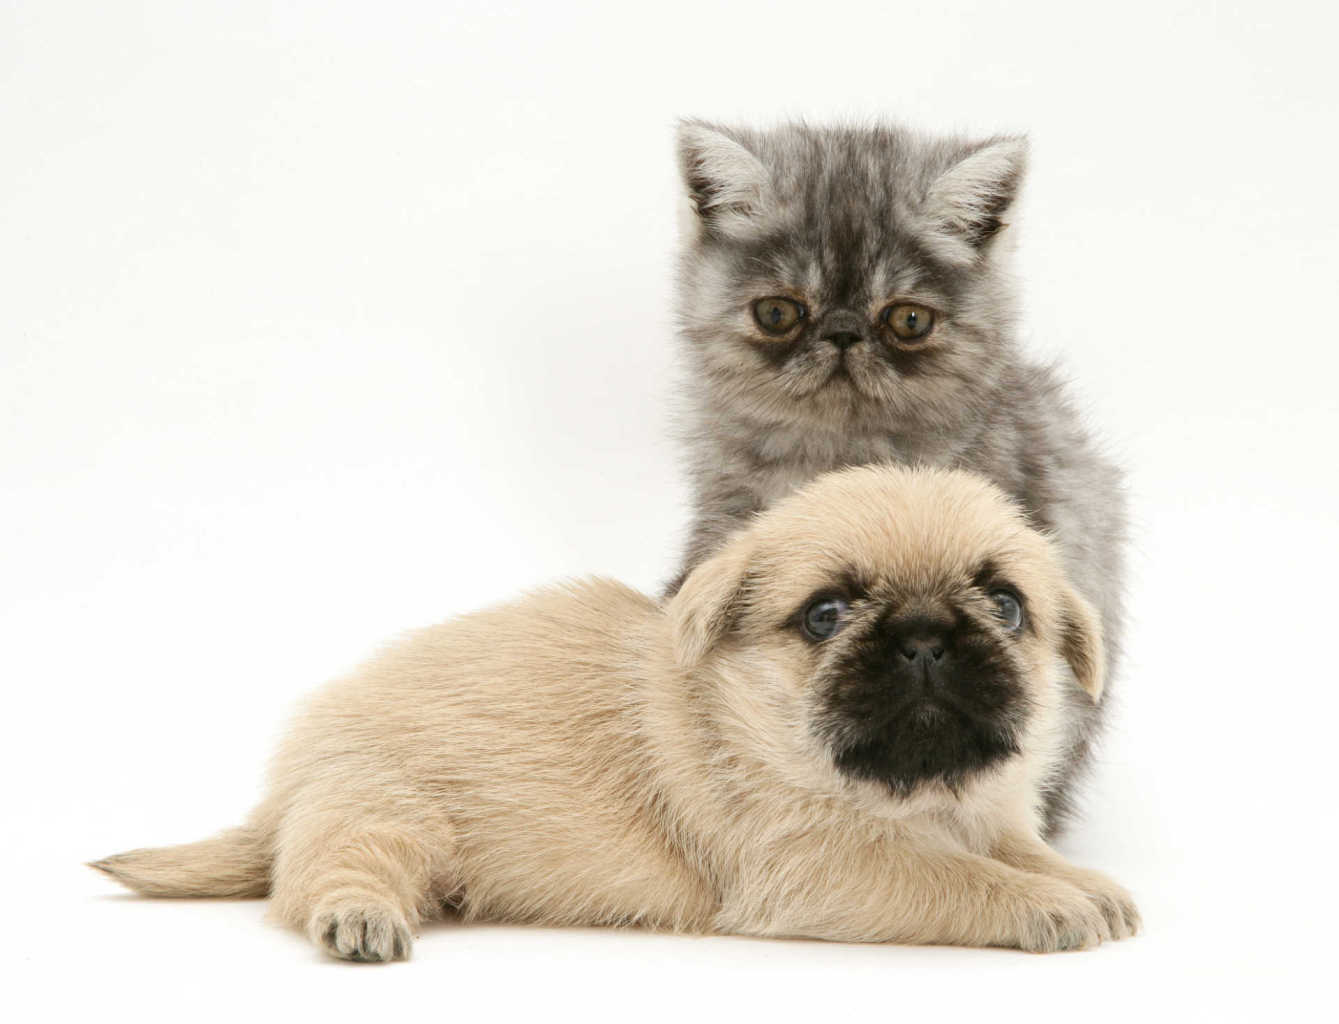 Exotic kitten and Pugzu (Pug x Shih-Tzu) pup.